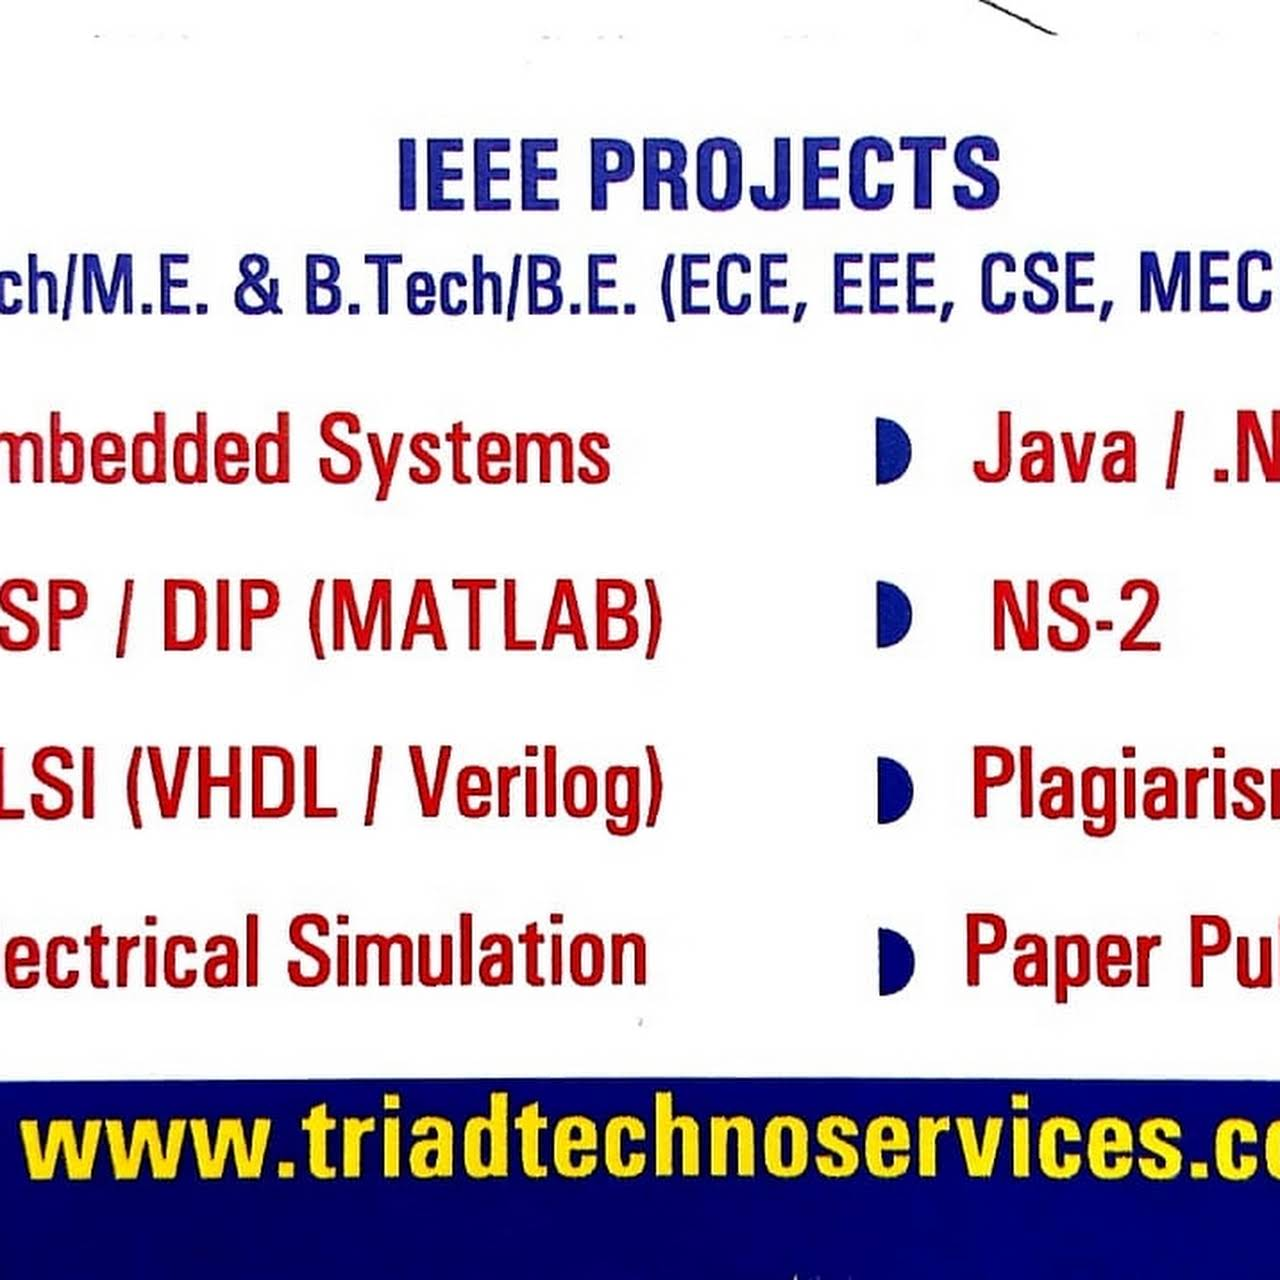 TRIAD TECHNO SERVICES - Research And Product Development in